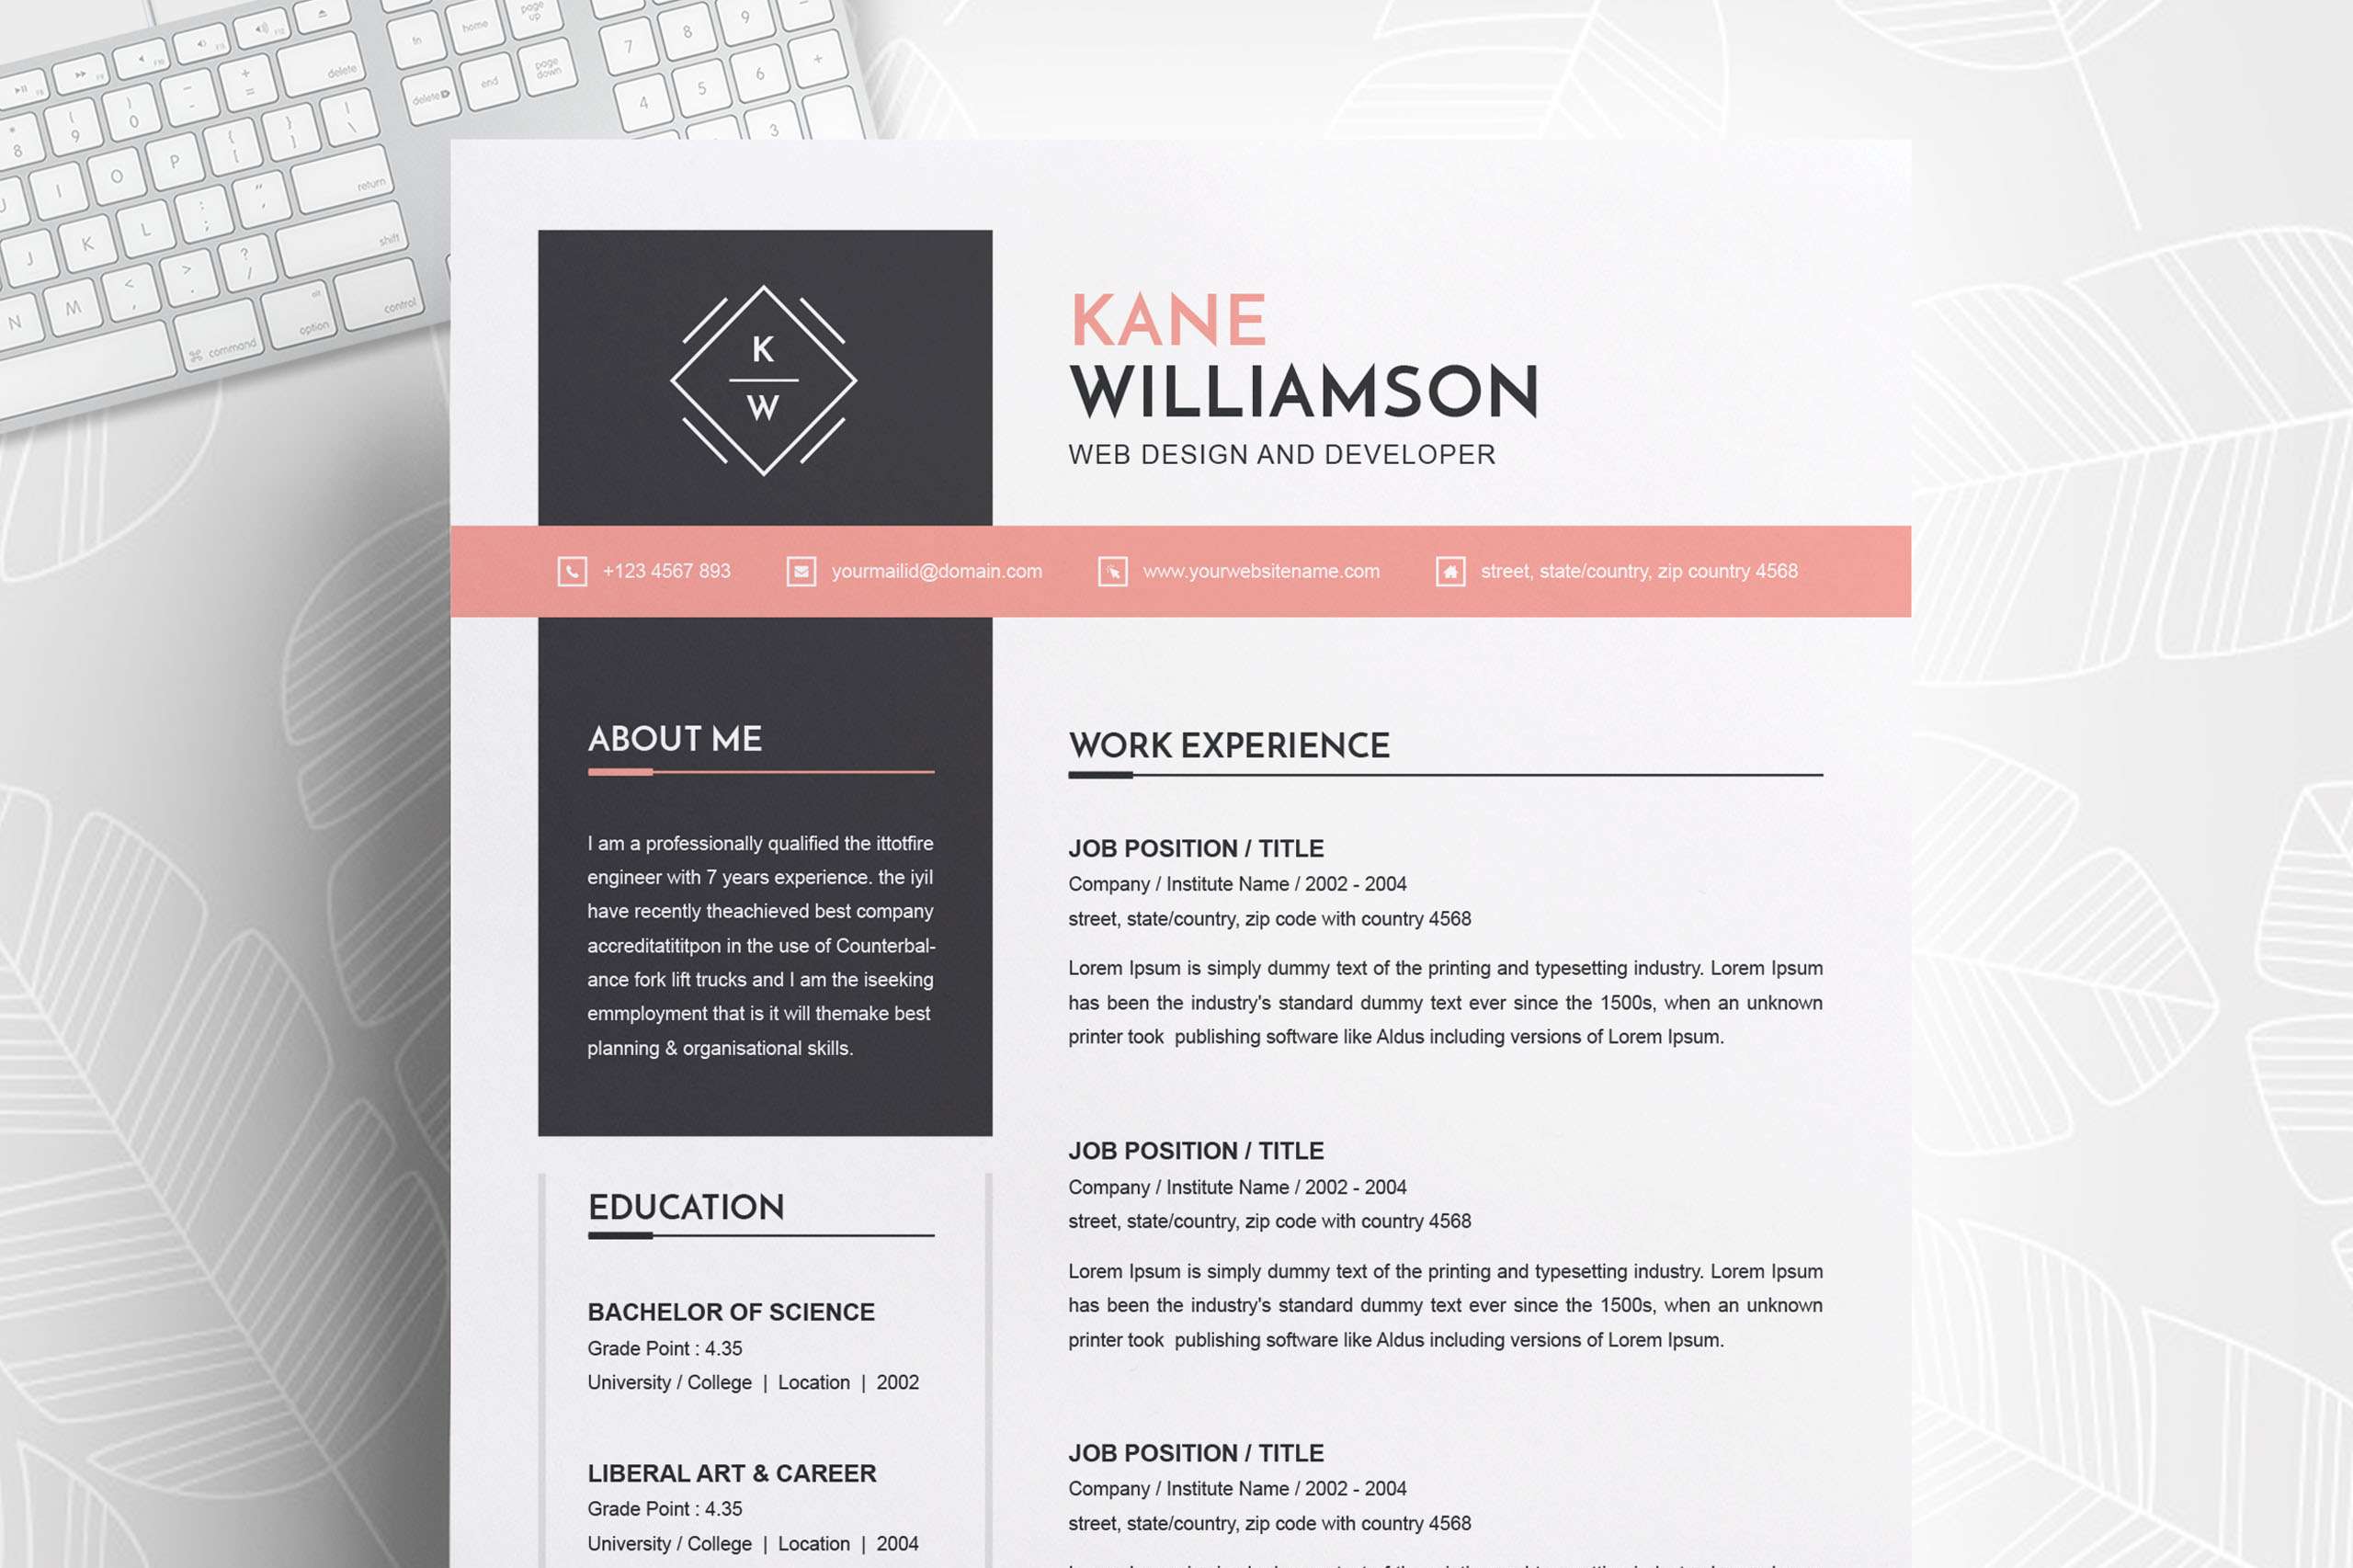 Professional Resume Template | MS Word CV Design Template example image 1